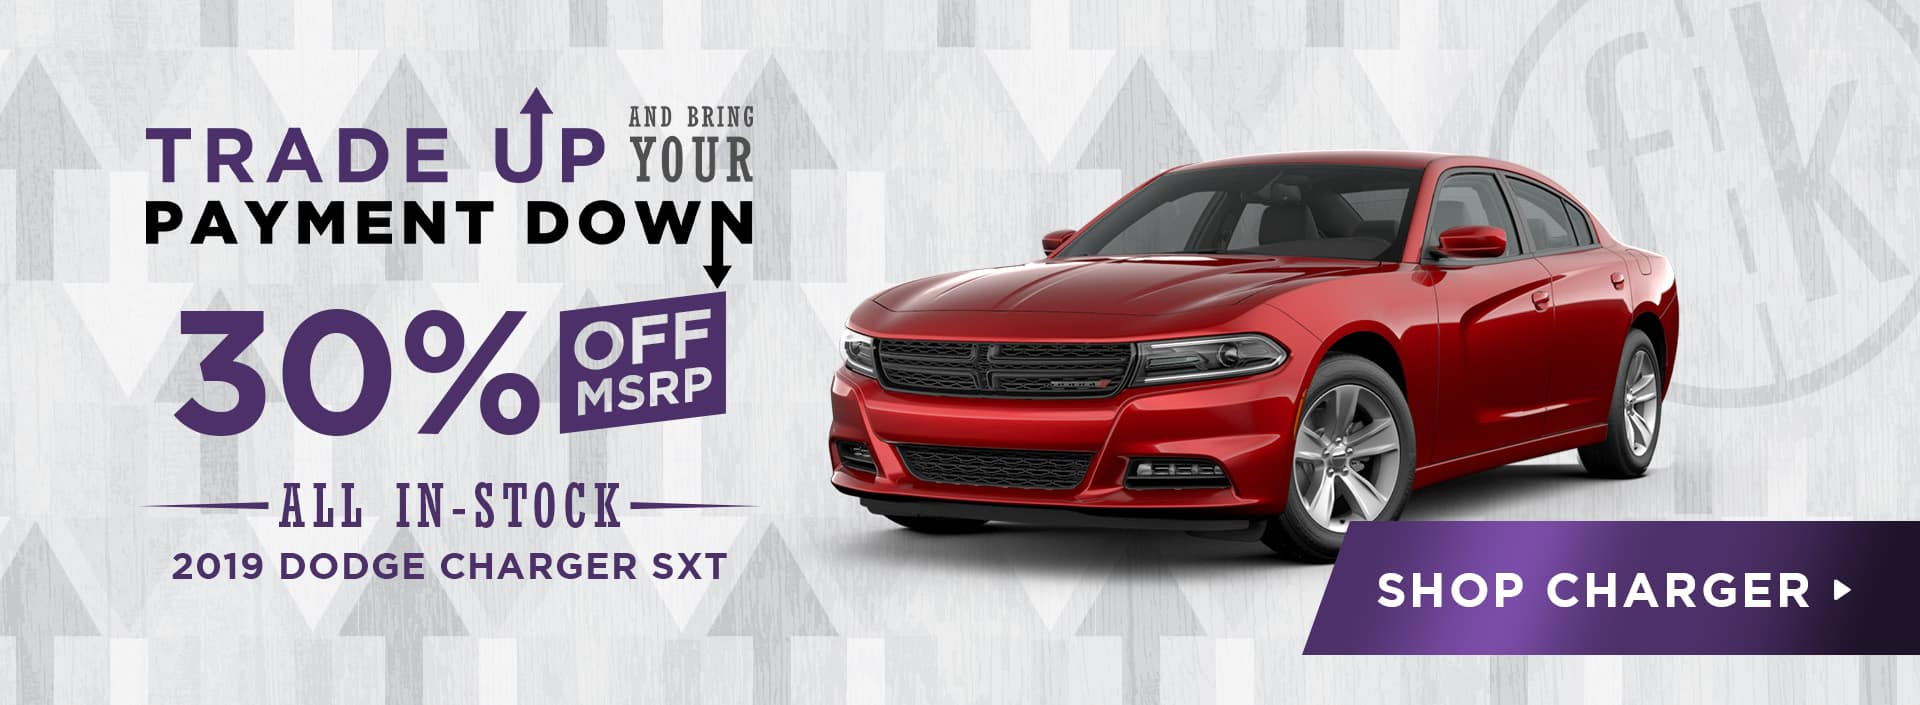 30% Off All In-Stock 2019 Dodge Charger SXT